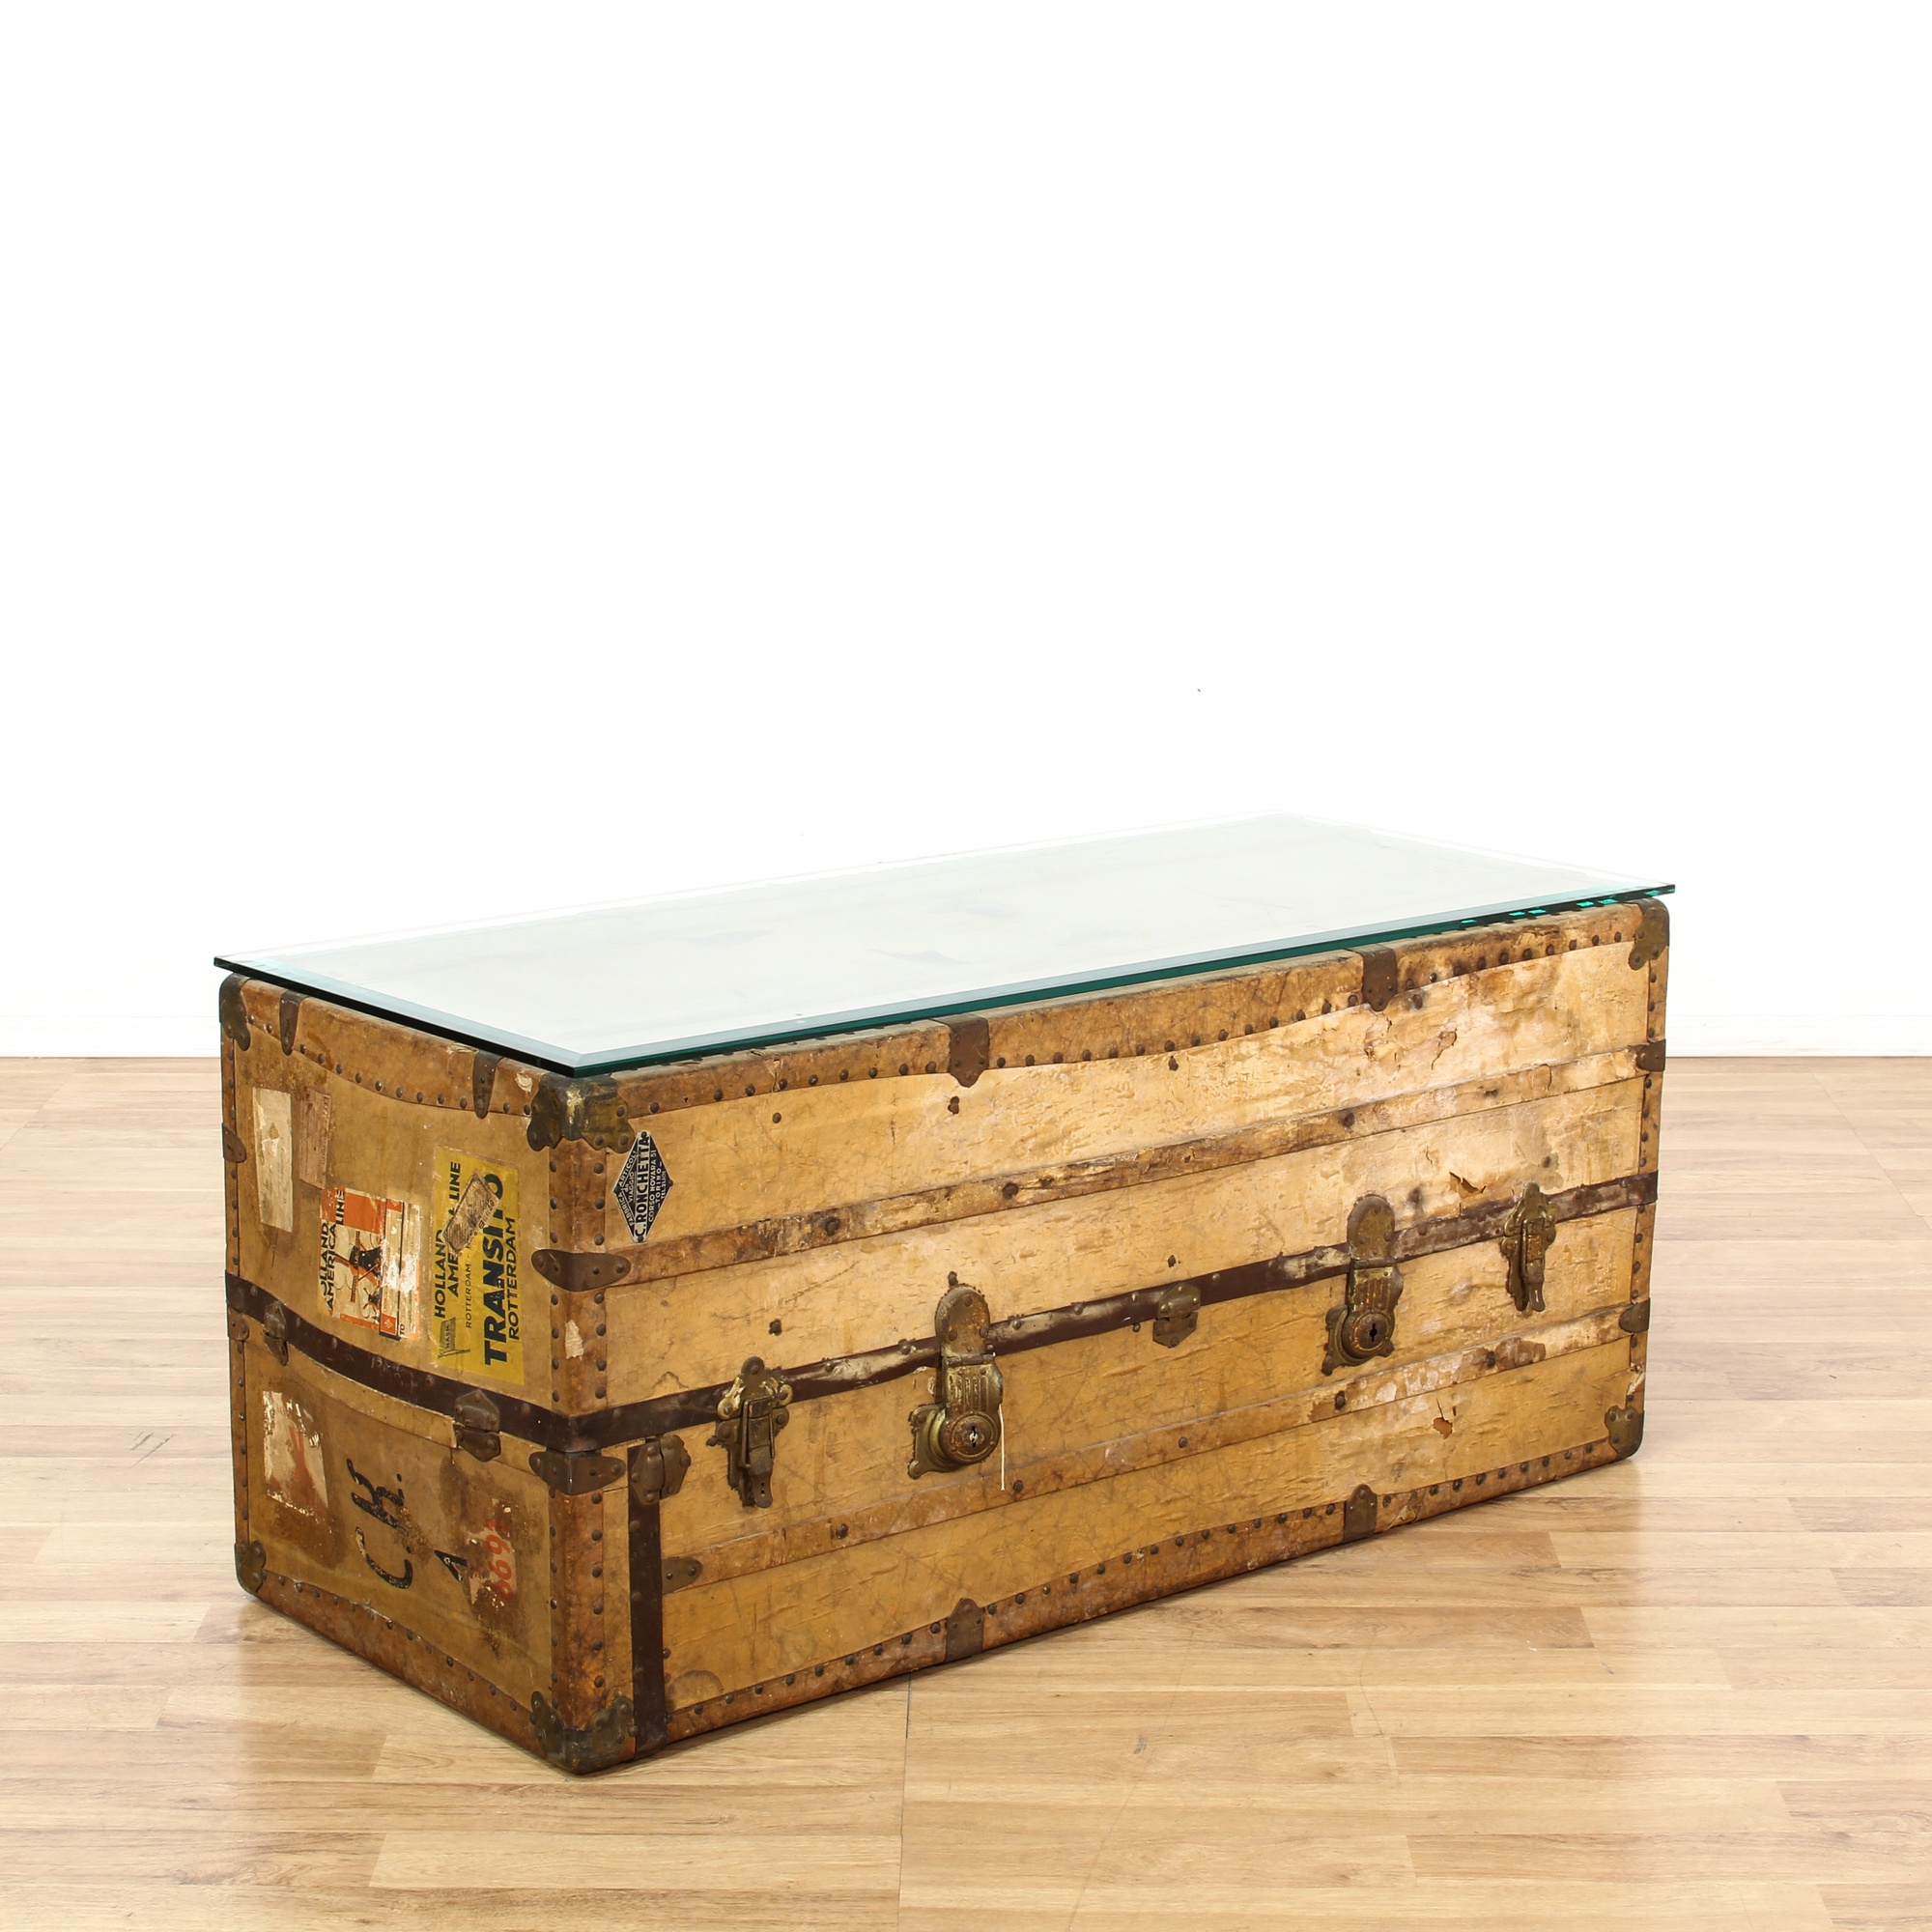 Antique Trunks As Coffee Tables: Antique Travel Steamer Trunk Coffee Table